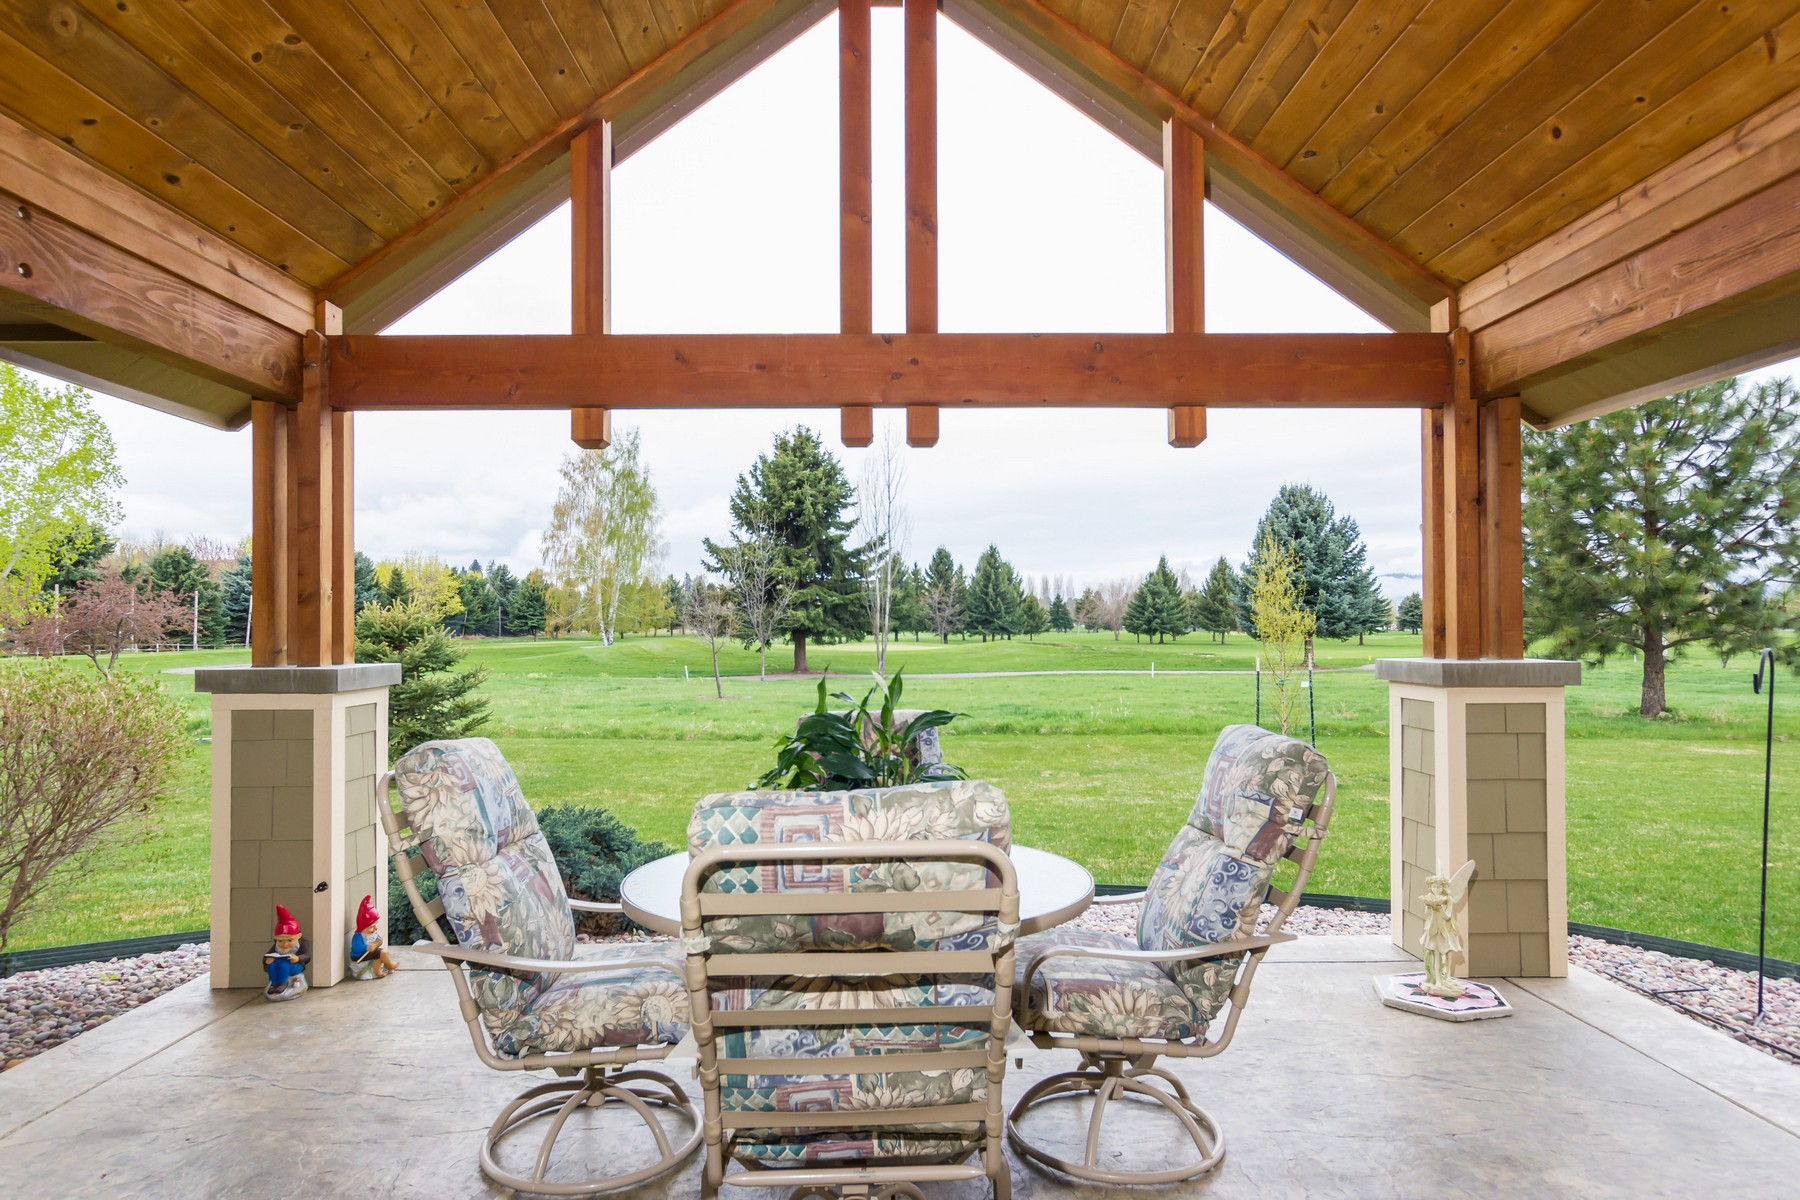 Townhouse for Sale at Golf Course 110 Yellowstone Ct Polson, Montana, 59860 United States